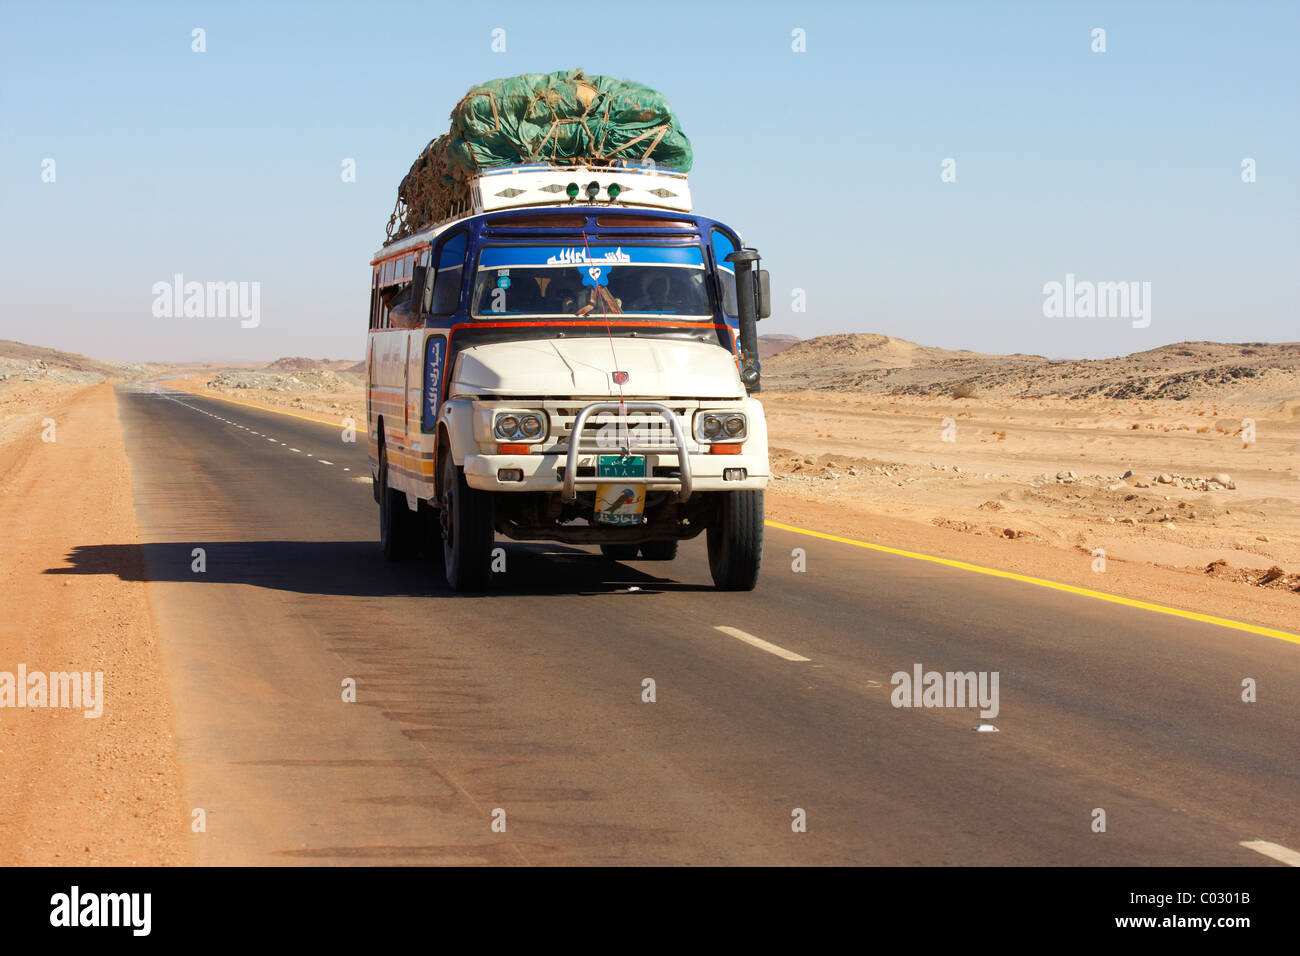 A truck in the Nubian Desert in Sudan, to the north of Dongola. - Stock Image